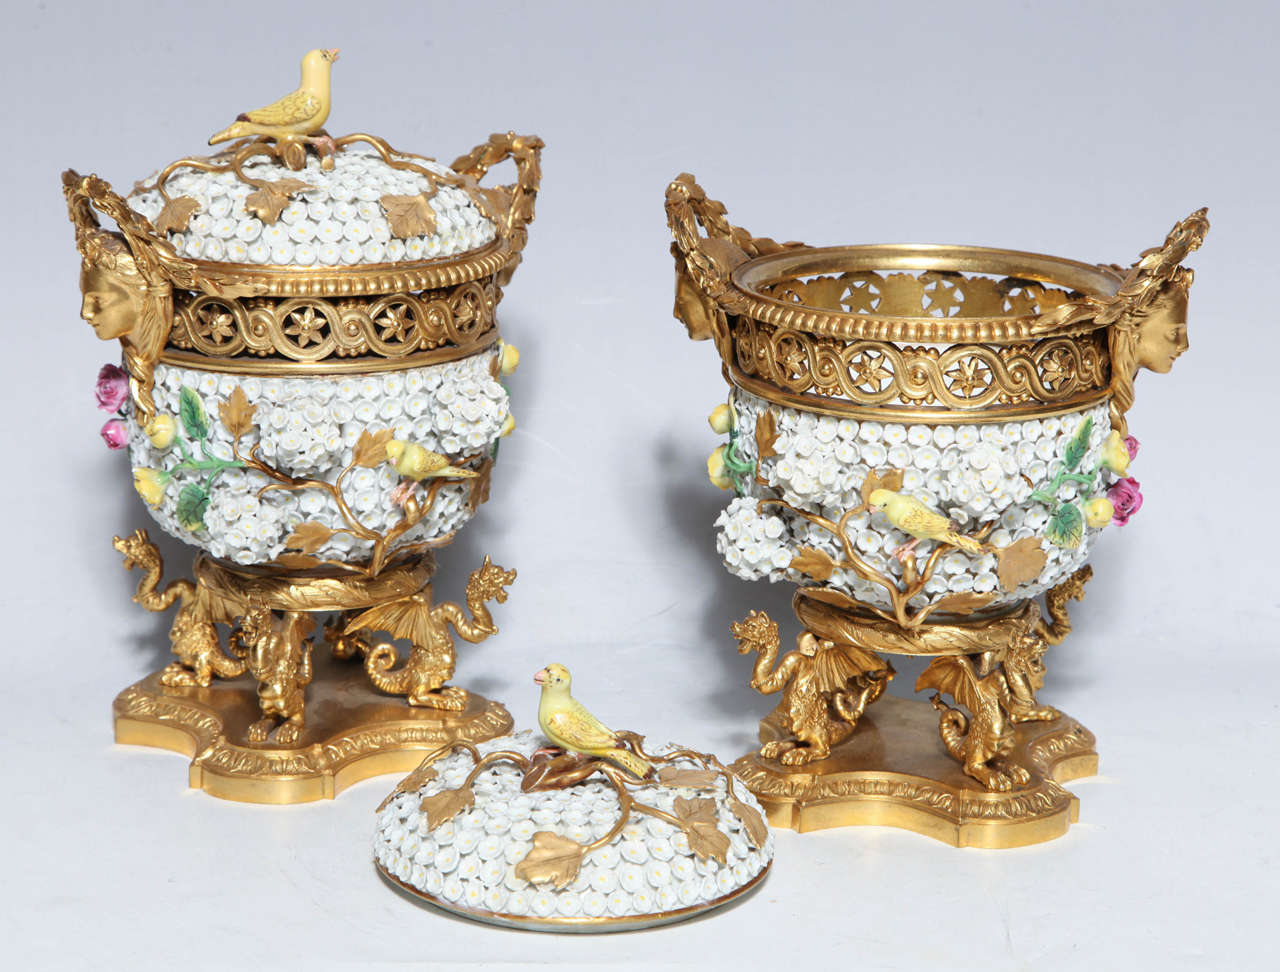 Pair of Meissen Schneeballen and Intricately Ormolu-Mounted Potpourri Vases For Sale 1